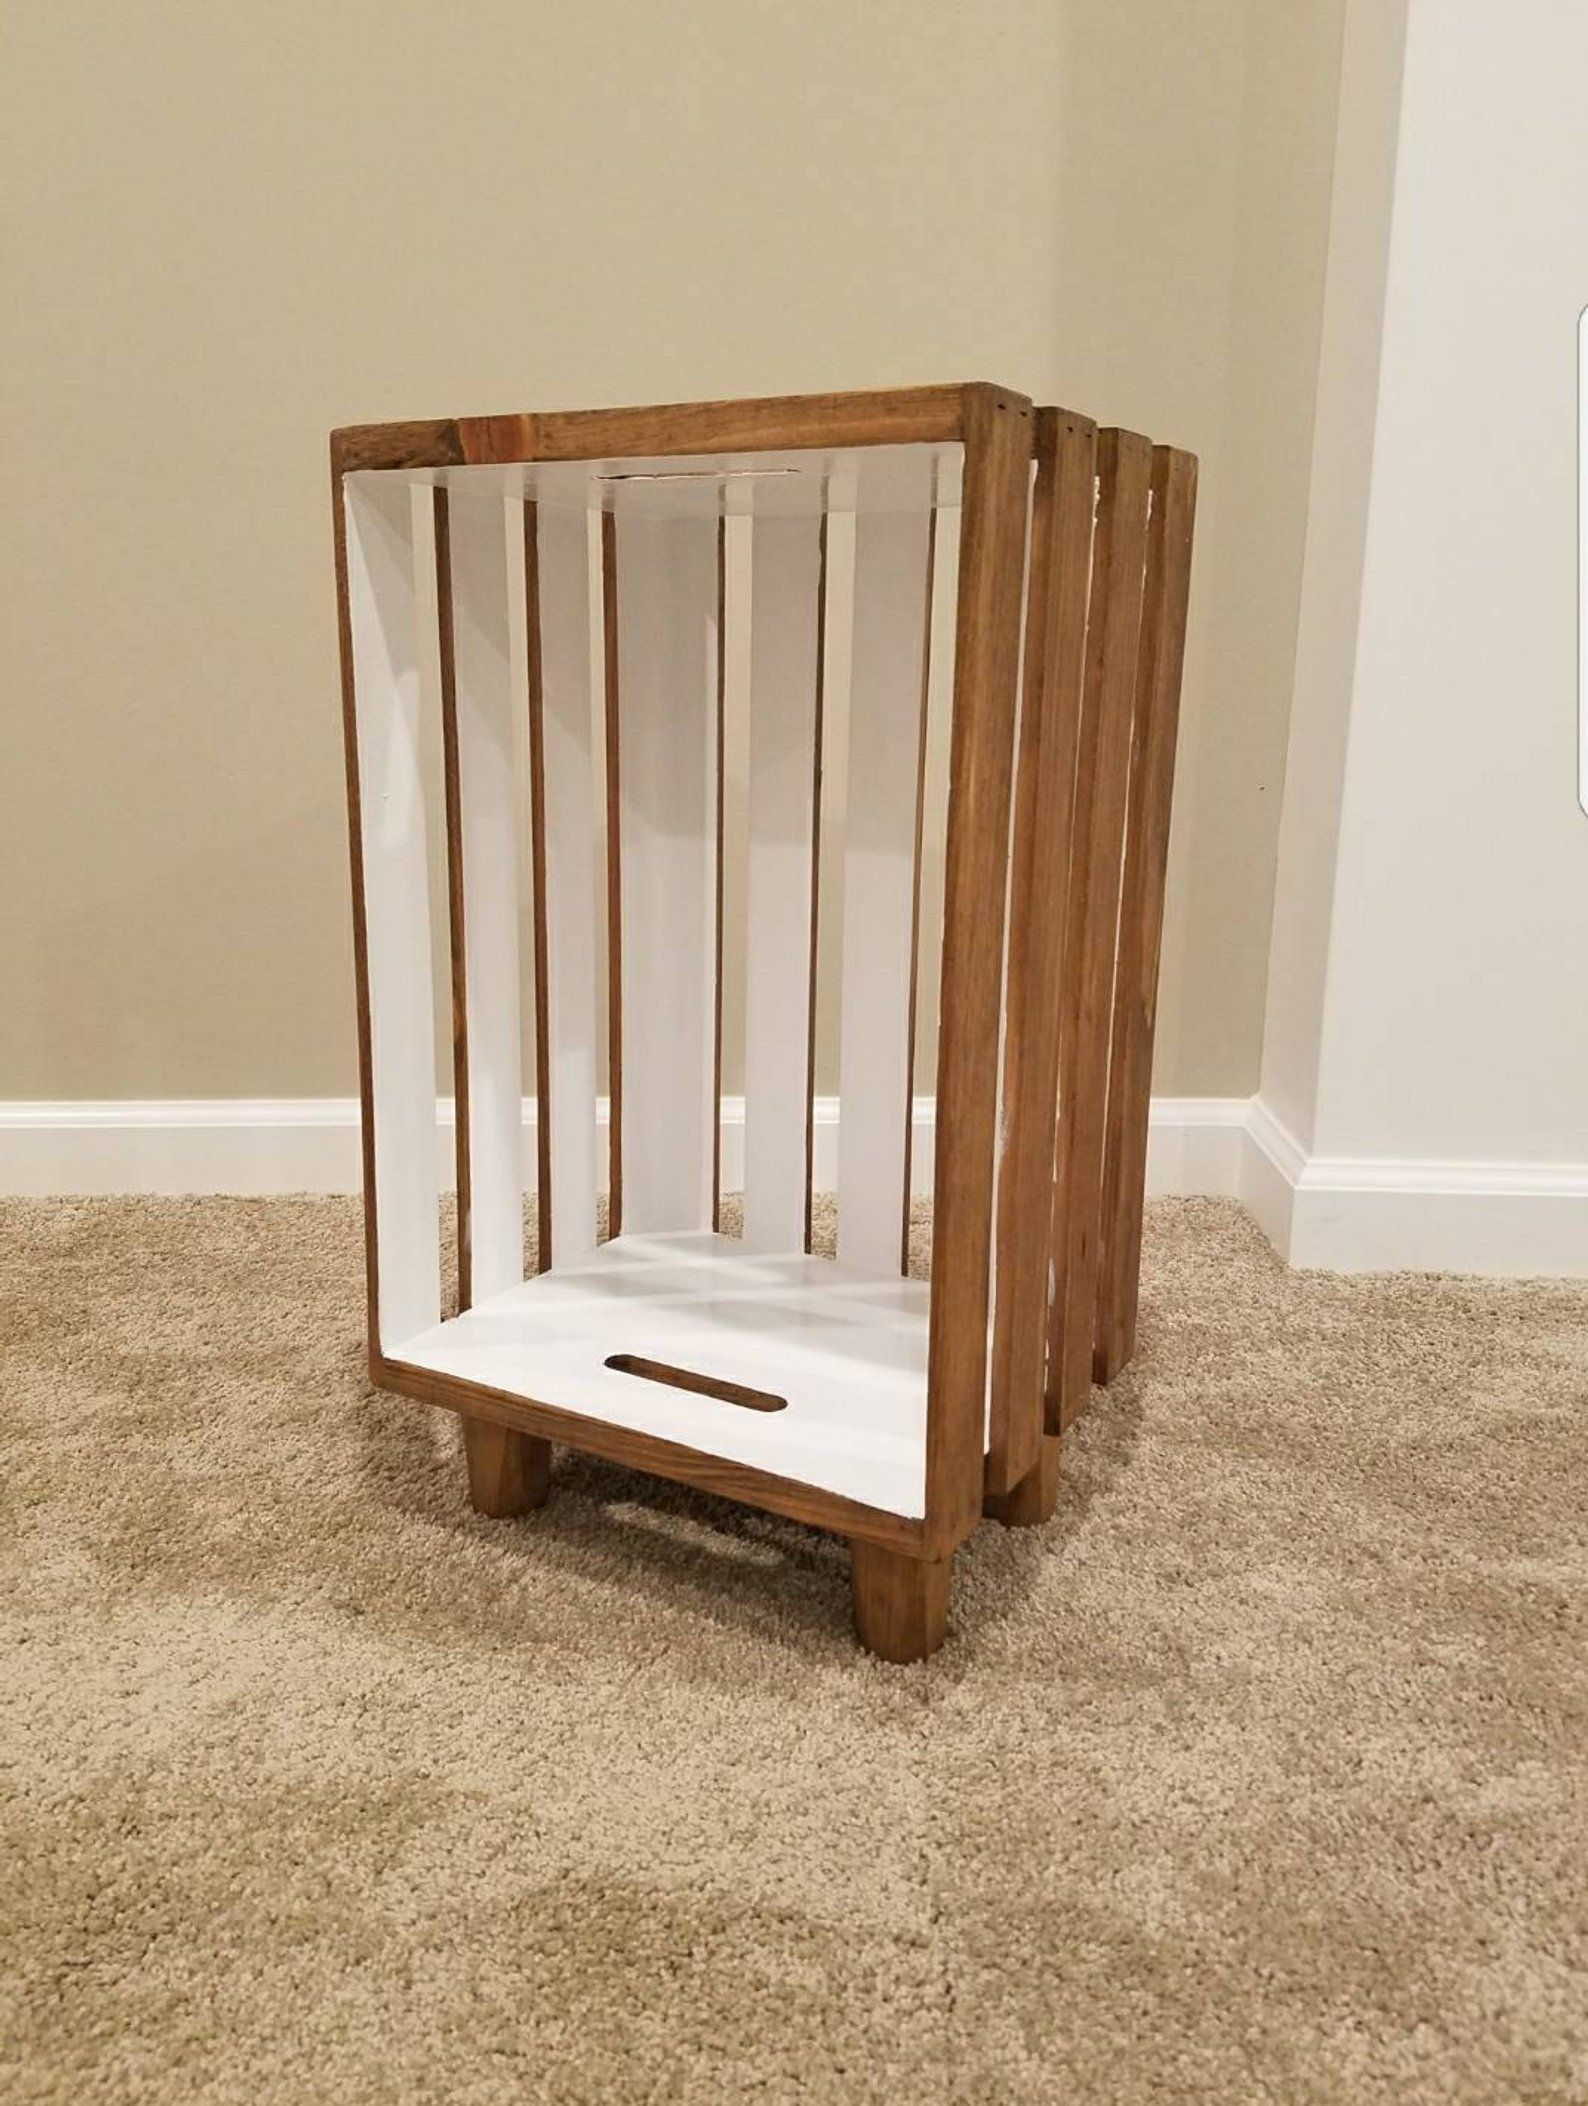 This Item Is Unavailable Etsy Crate Nightstand Wood Crates Wood Decor Diy